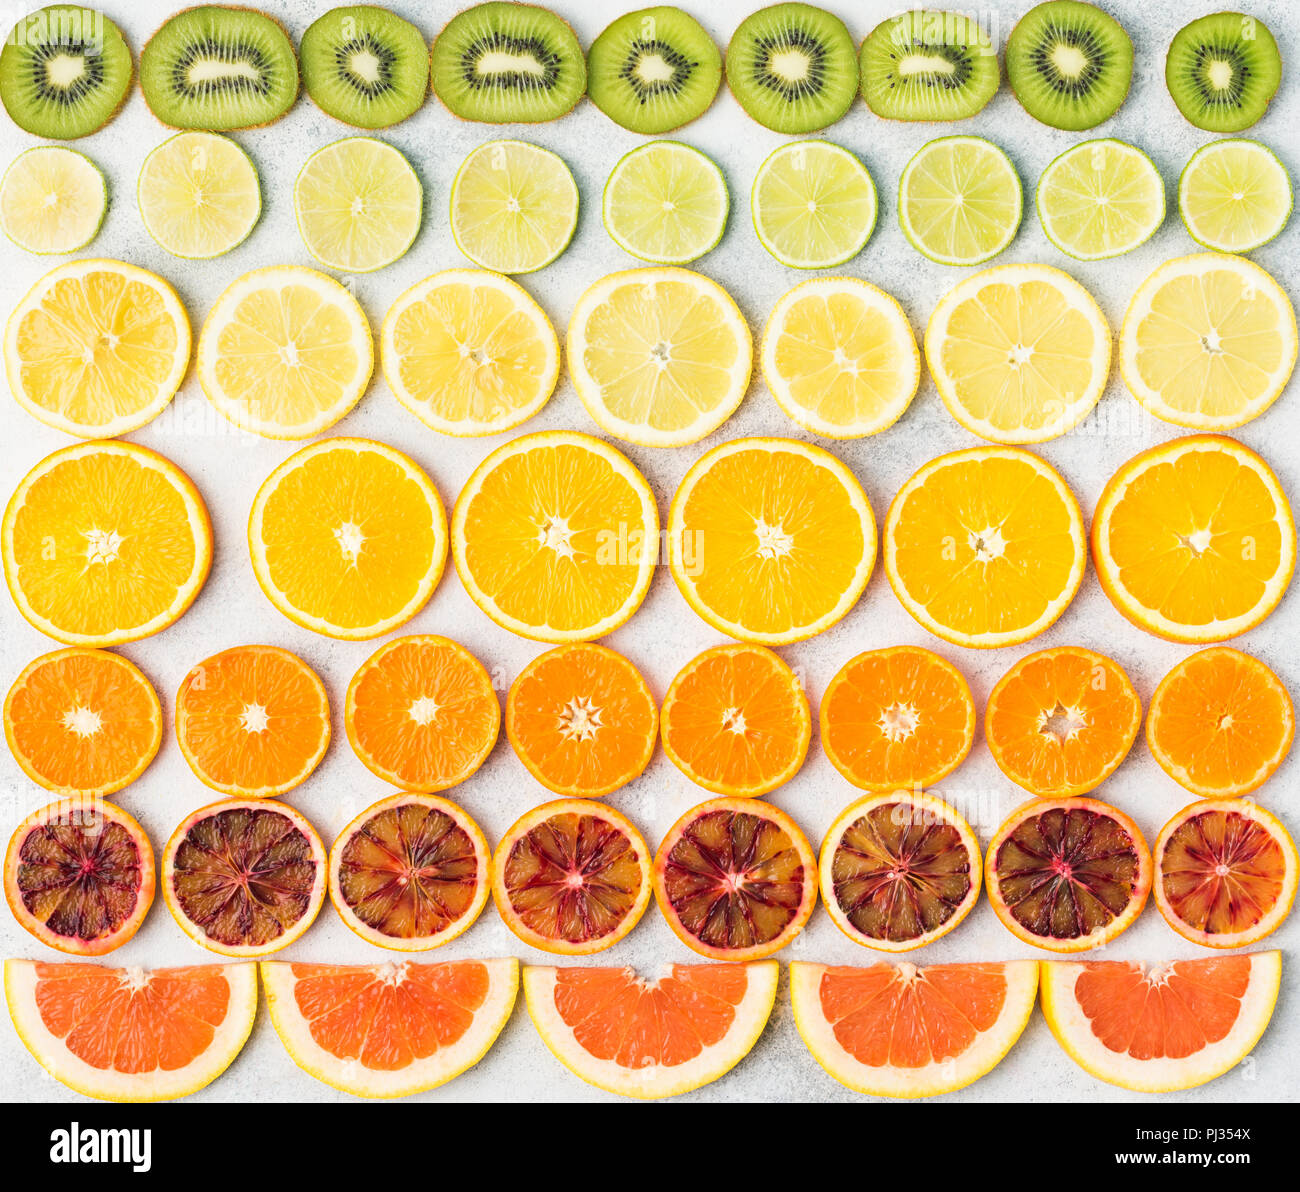 Sliced fruits rich in vitamin C, oranges, lemons, limes, satsumas, kiwis, grapefruits arranged in the rows. Colorful background, top view - Stock Image